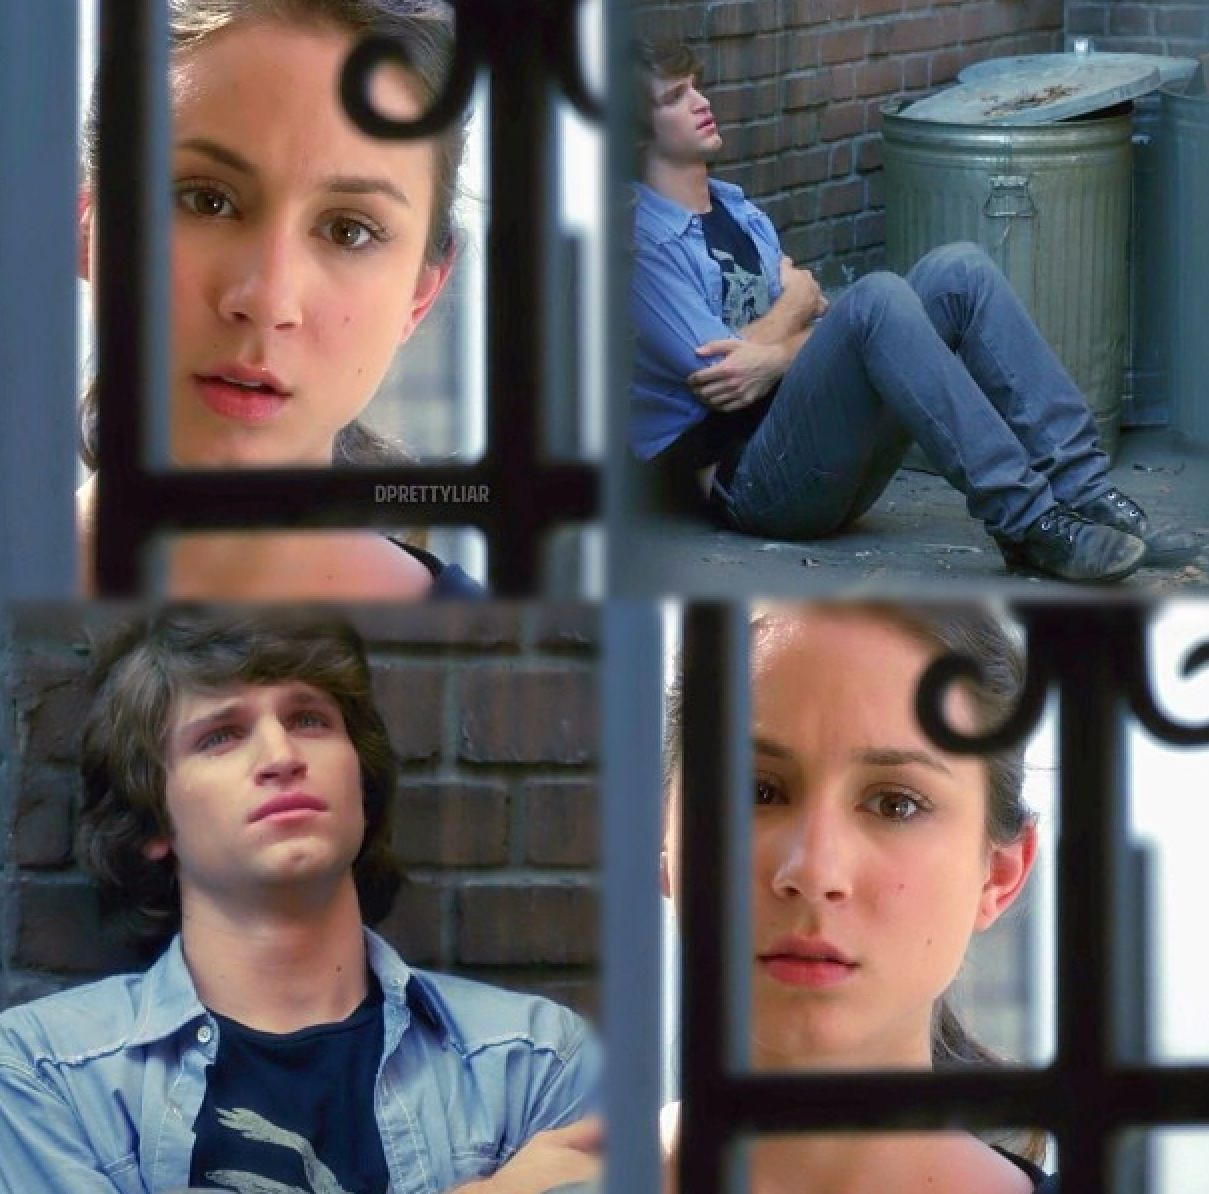 Spencer hastings and toby cavanaugh